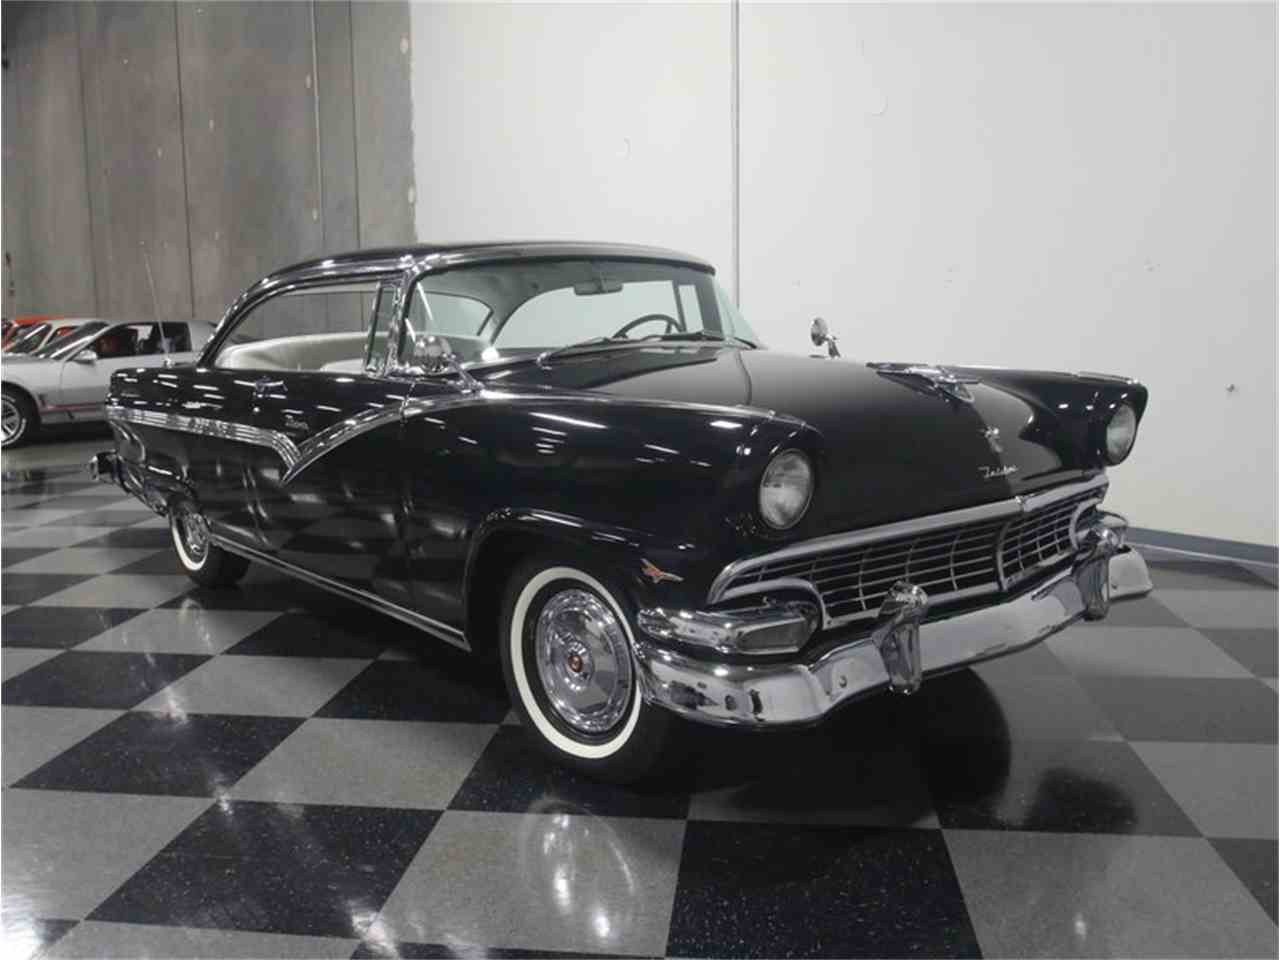 Large Picture of '56 Ford Fairlane Victoria located in Lithia Springs Georgia Offered by Streetside Classics - Atlanta - LAUC